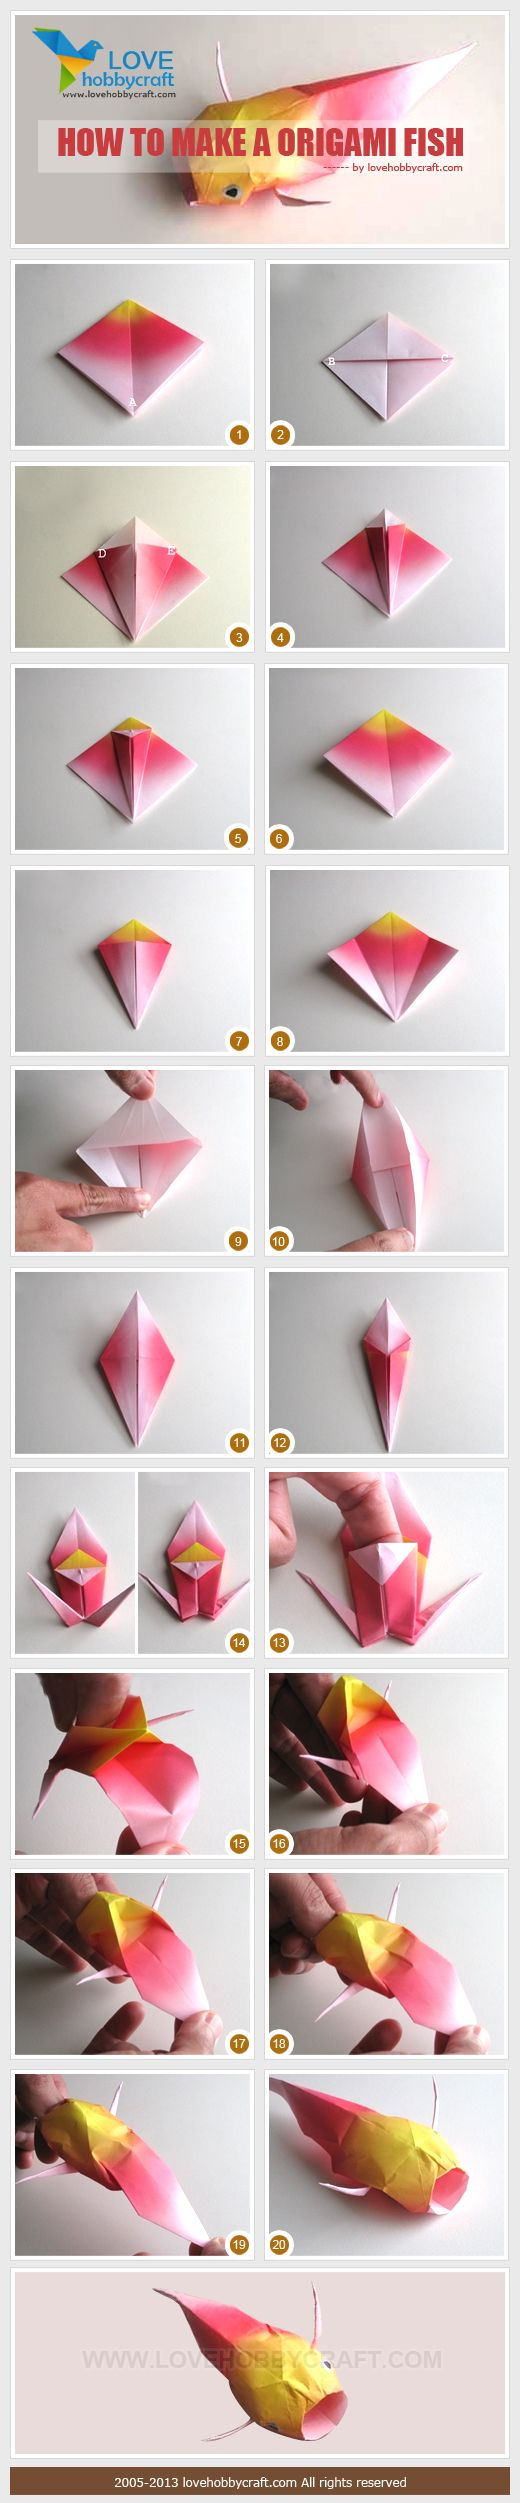 Origami koi instruction images for Origami koi fish